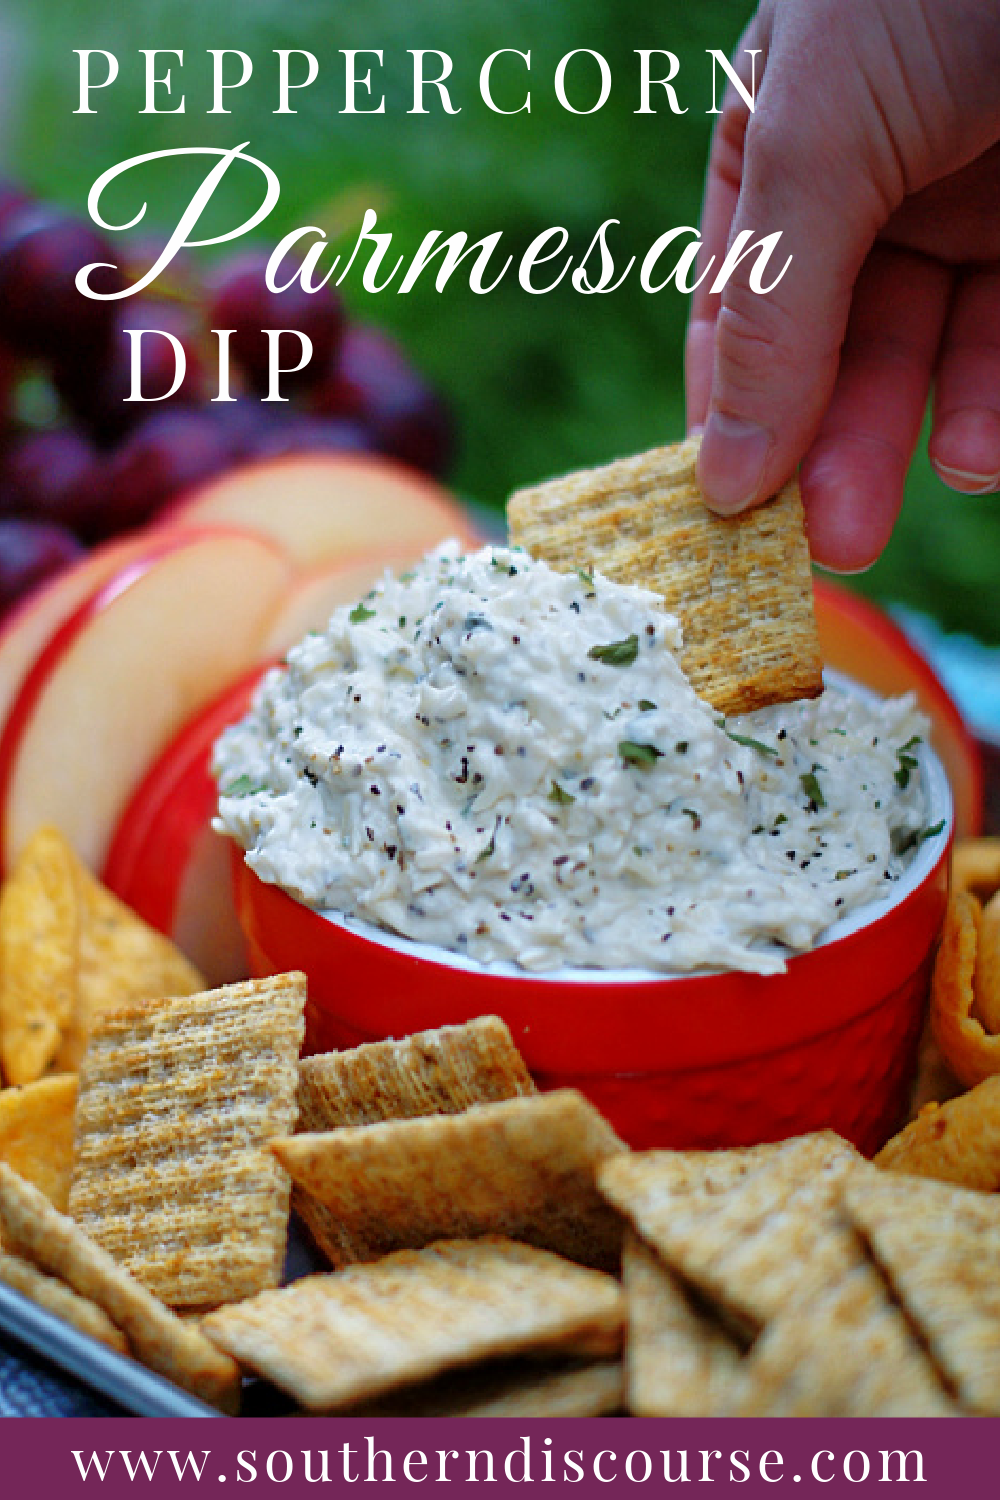 Sharp, rich Parmesan cheese & cracked black peppercorns come together with a little mayo, sour cream, cream cheese and spices to make a fabulously easy cheese dip that can be served hot or cold!